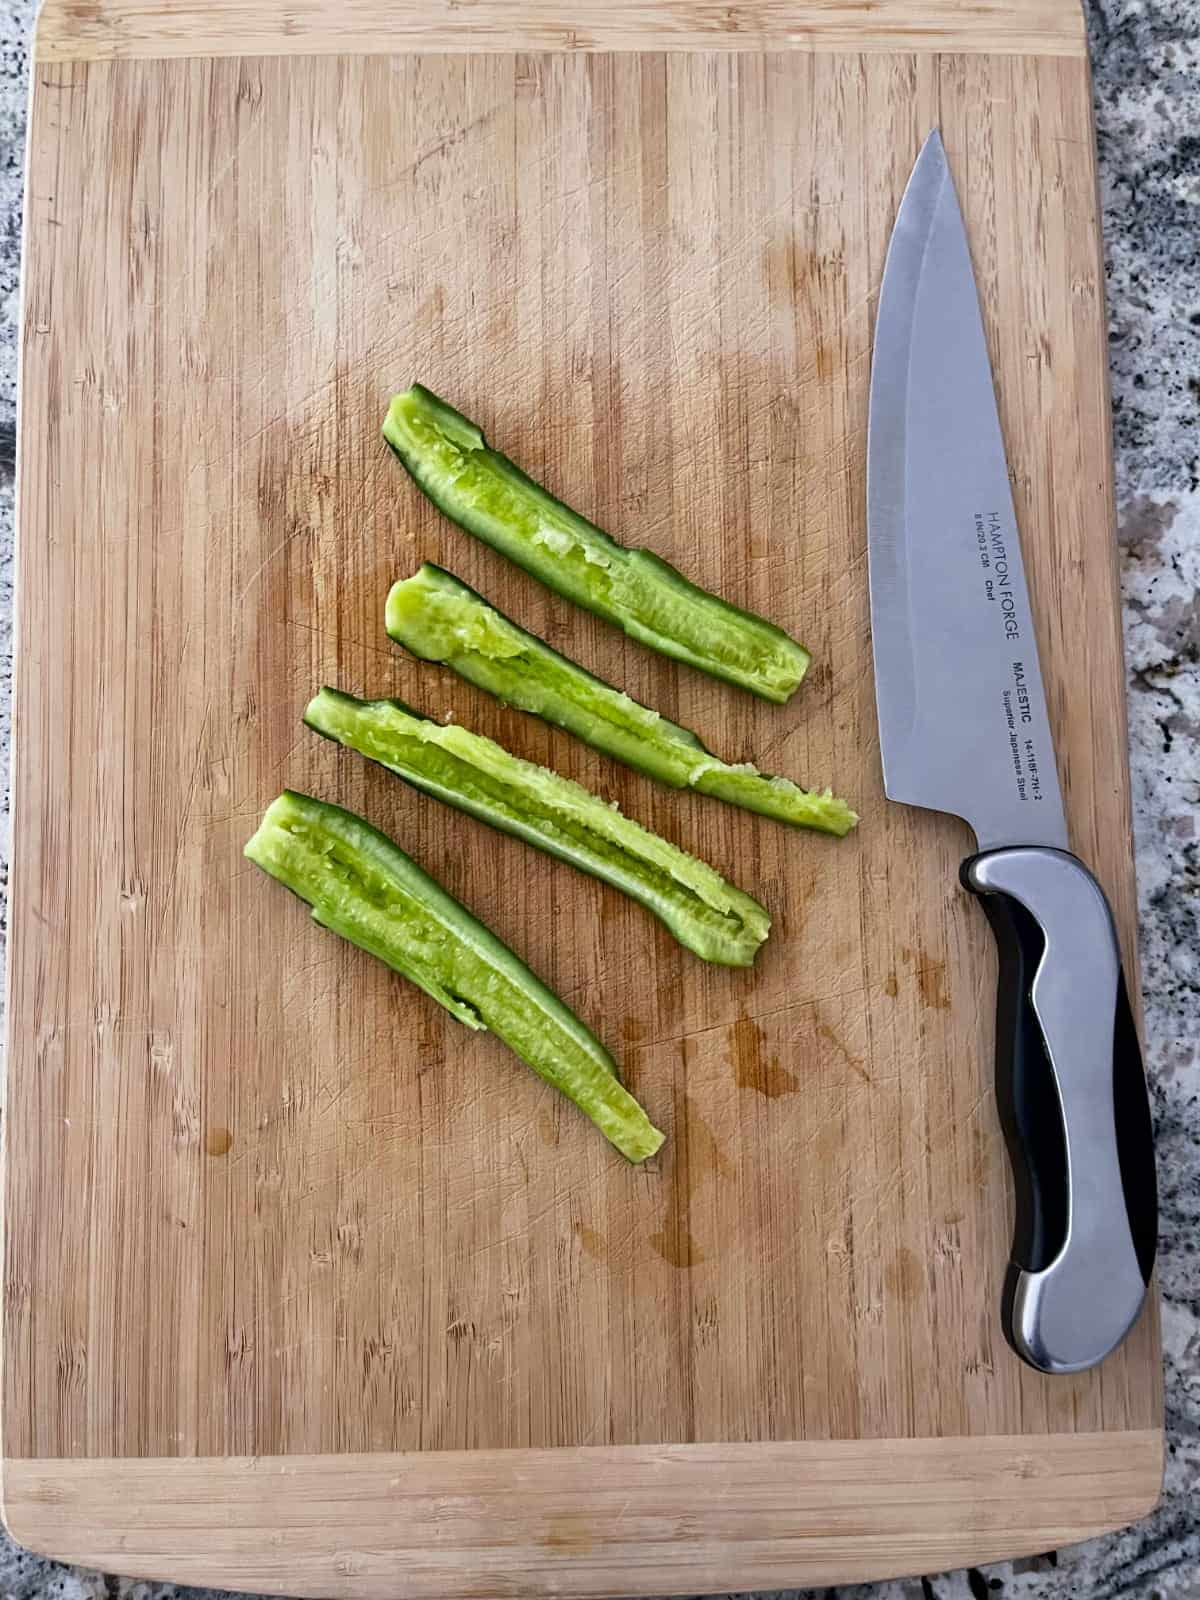 Smashed cucumber pieces alongside chef's knife on wood cutting board.